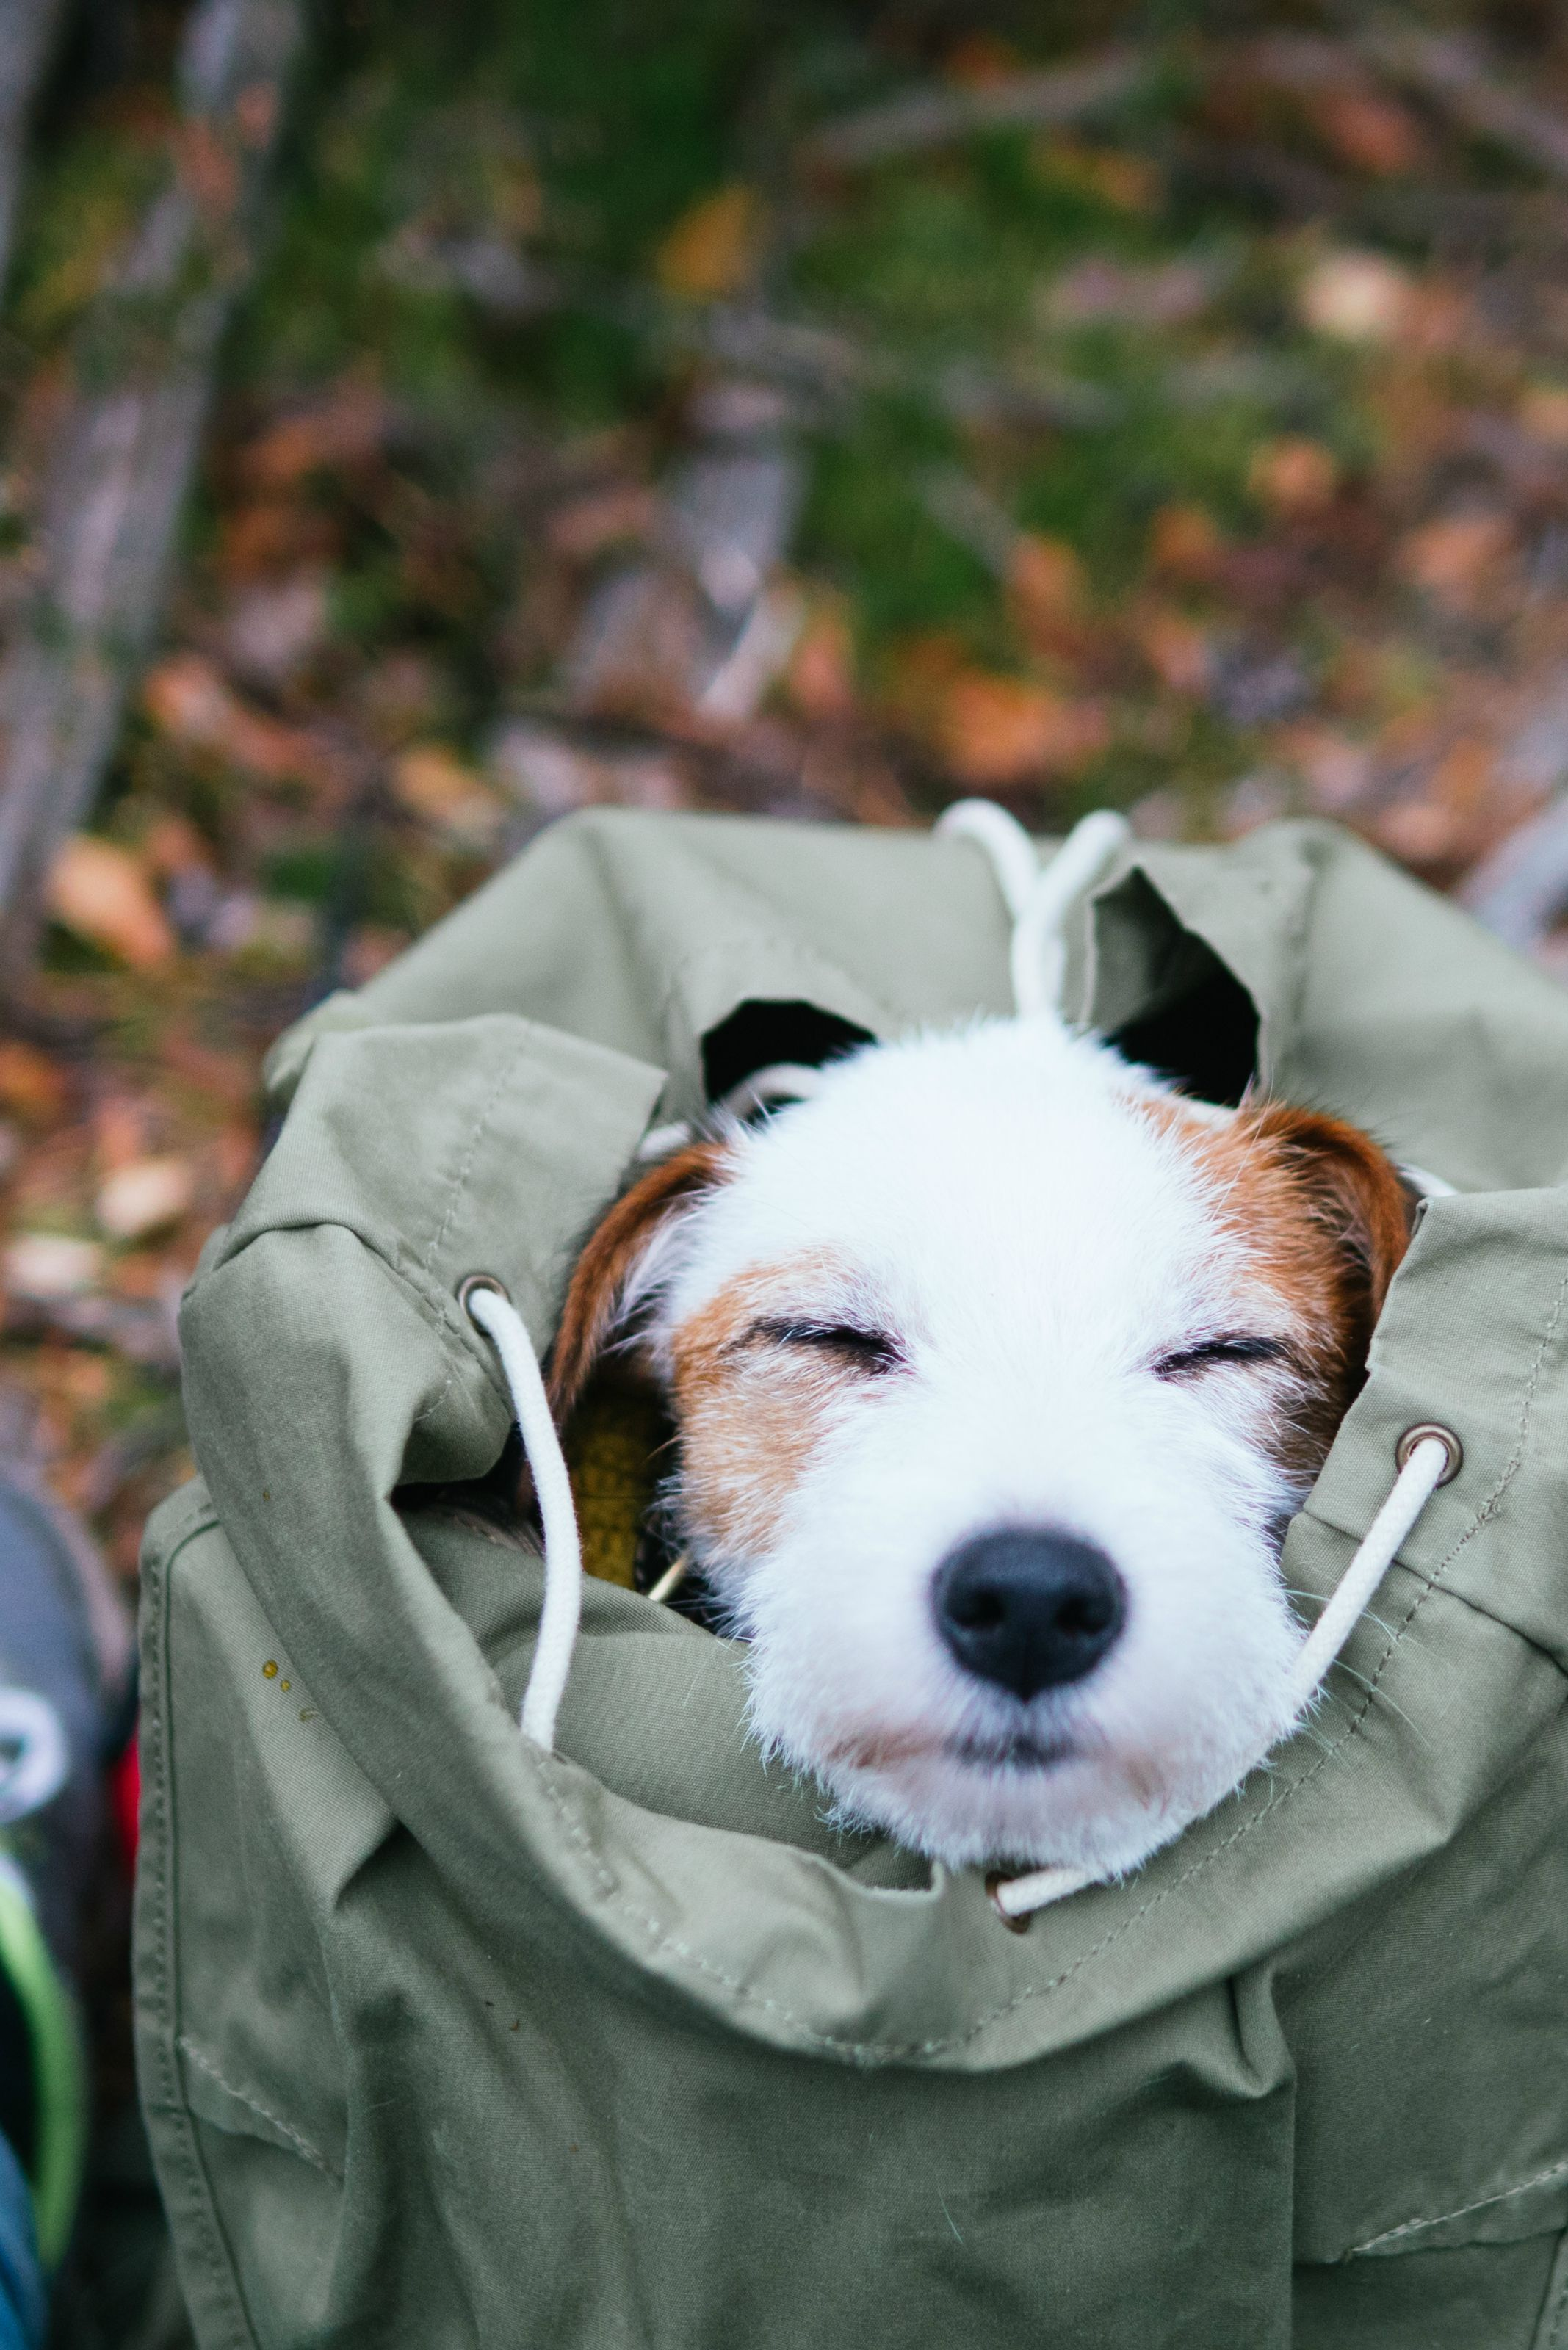 Hiking with dog. Outdoor adventure dog sleeping in a backpack. Dog photography. #dogsphotography